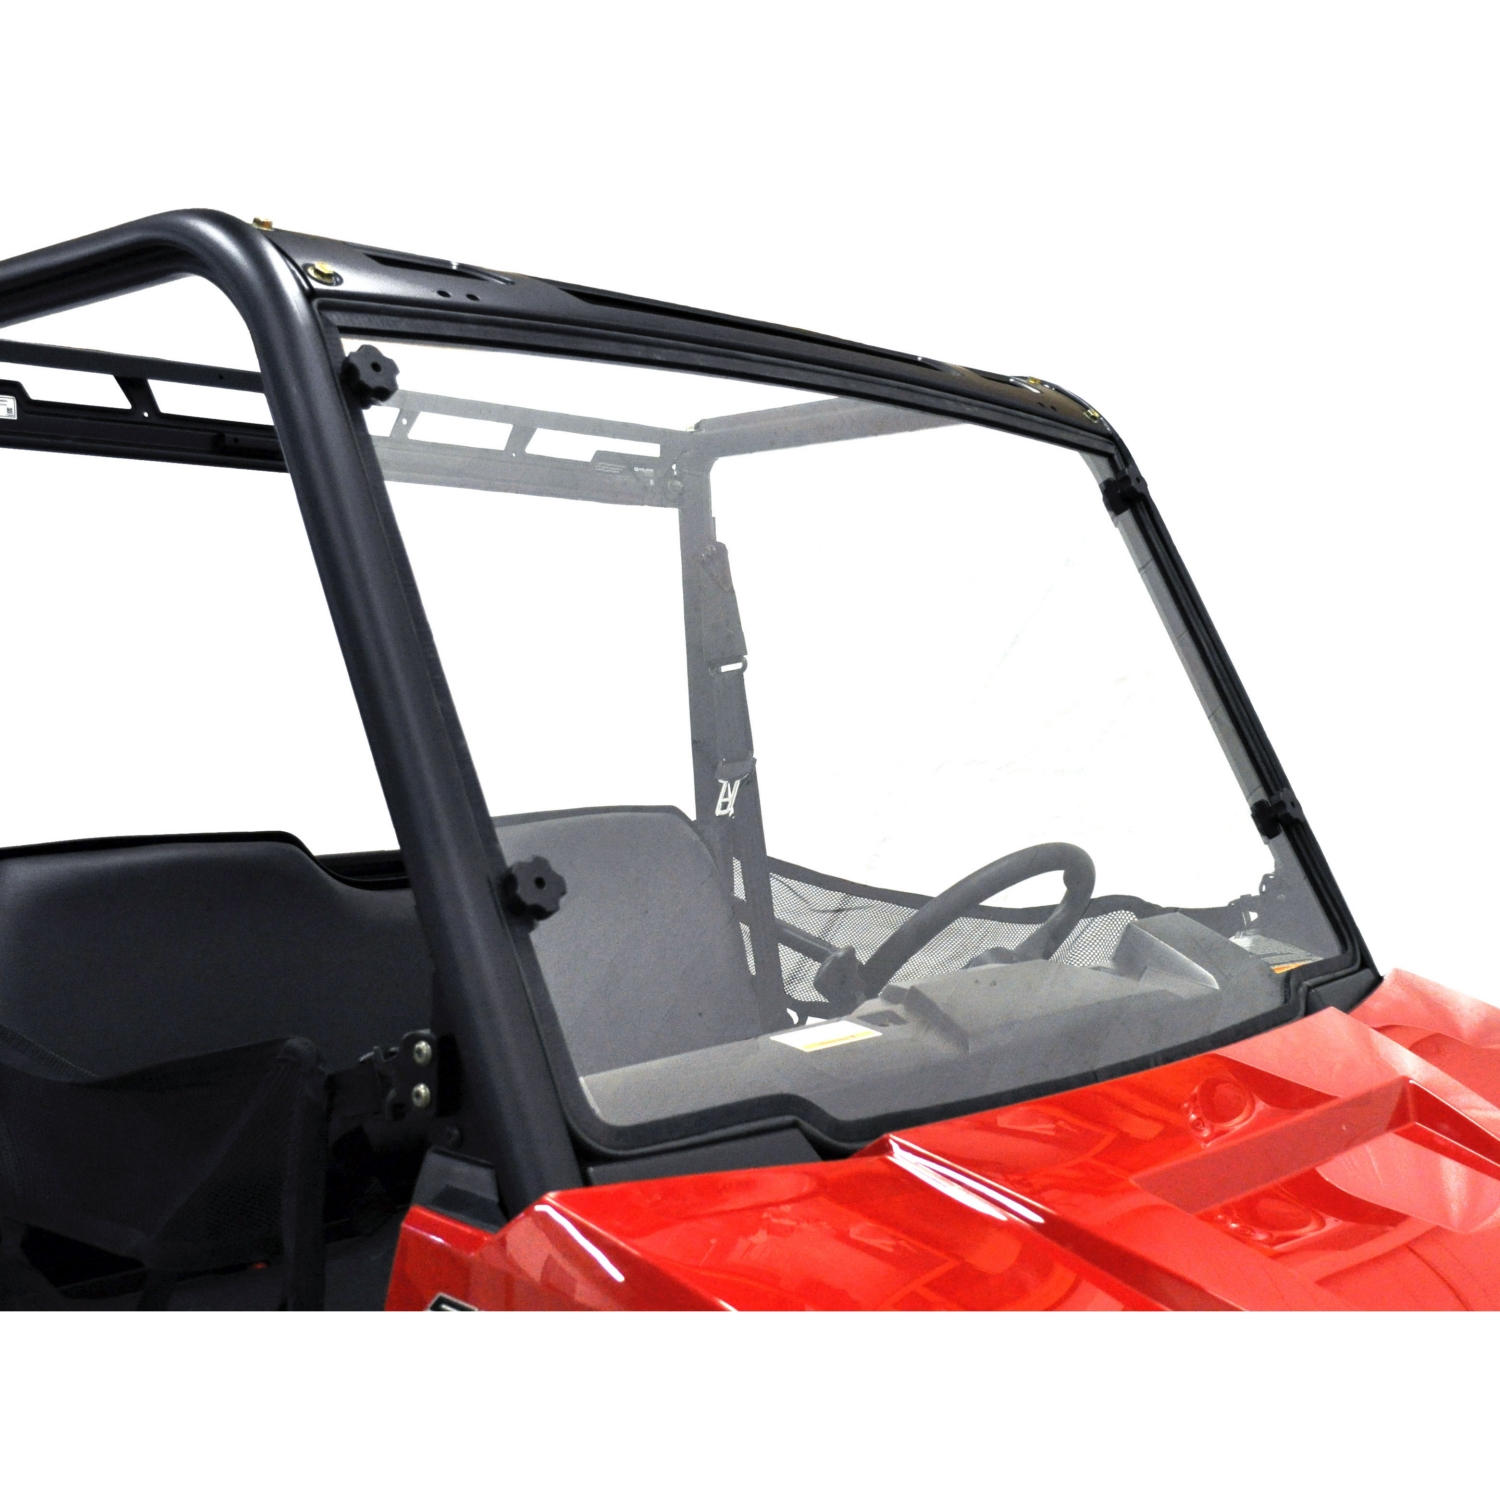 2015-2019 POLARIS RANGER 570 MIDSIZE   3//16 POLYCARBONATE FULL WINDSHIELD